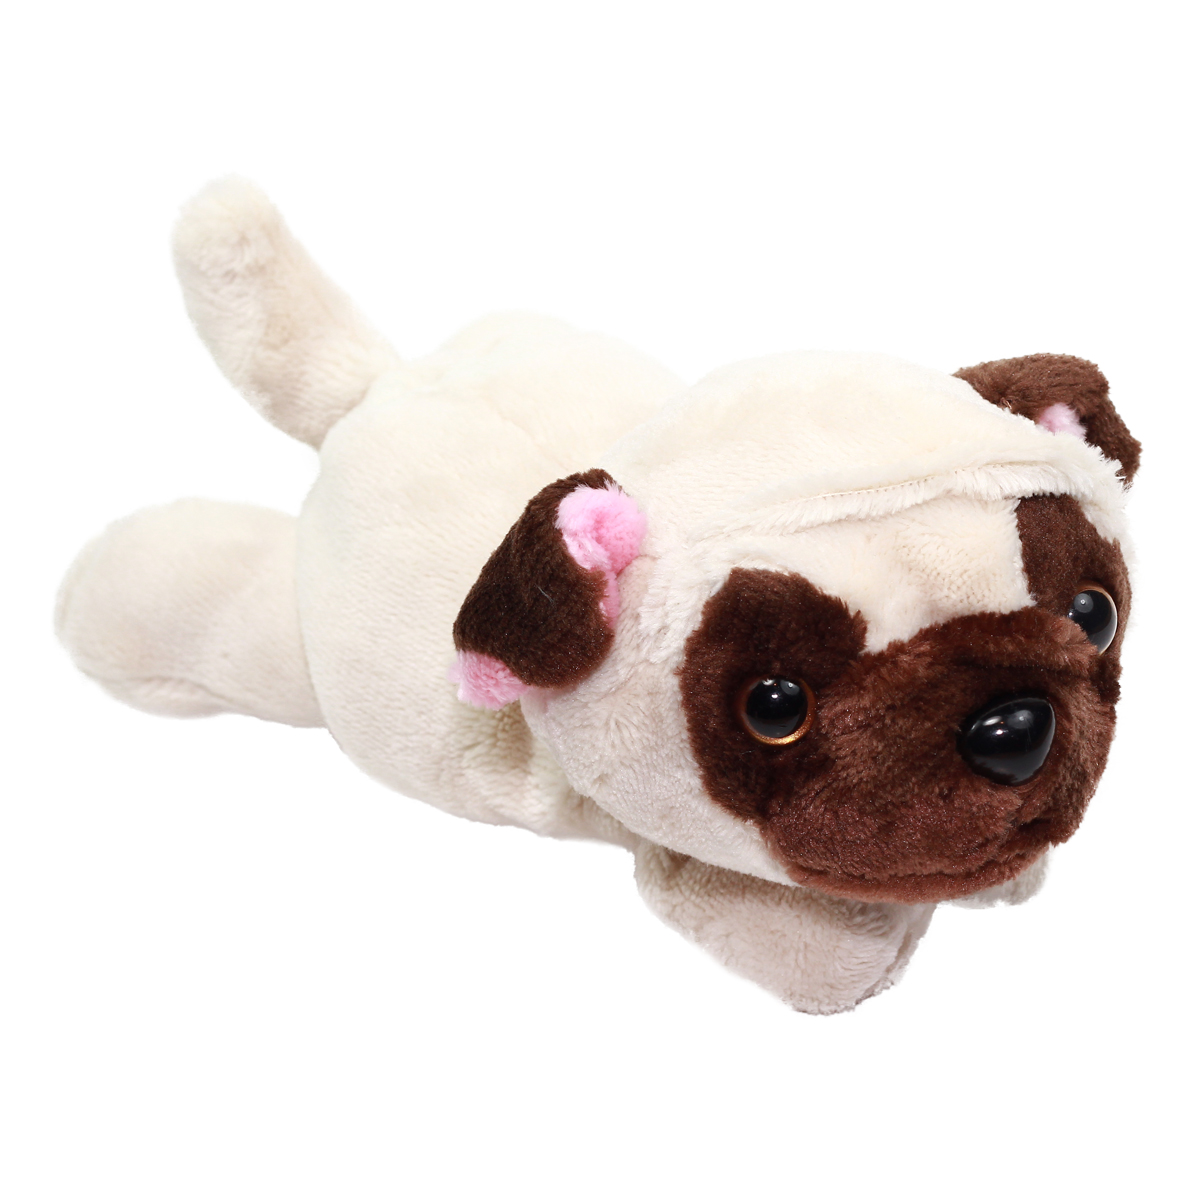 Kawaii Friends Dog Collection Beige Pug Plush 9 Inches